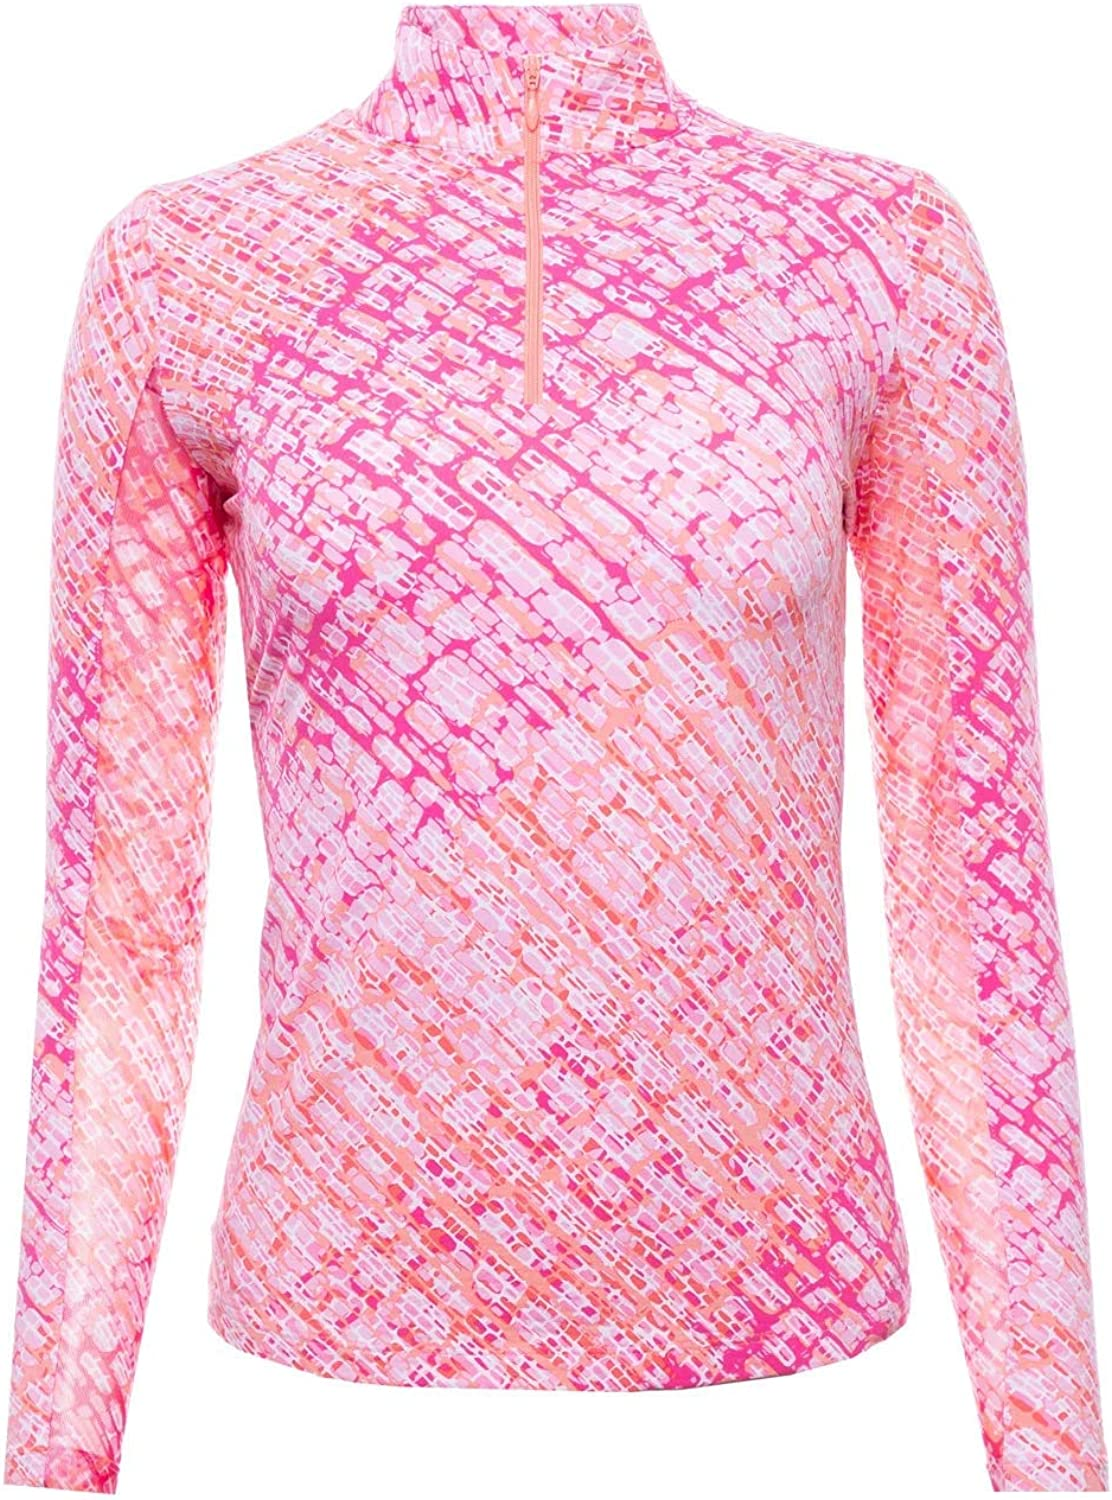 Ibkul Women's Geo Key Print 1/2 Zip Golf Pullover